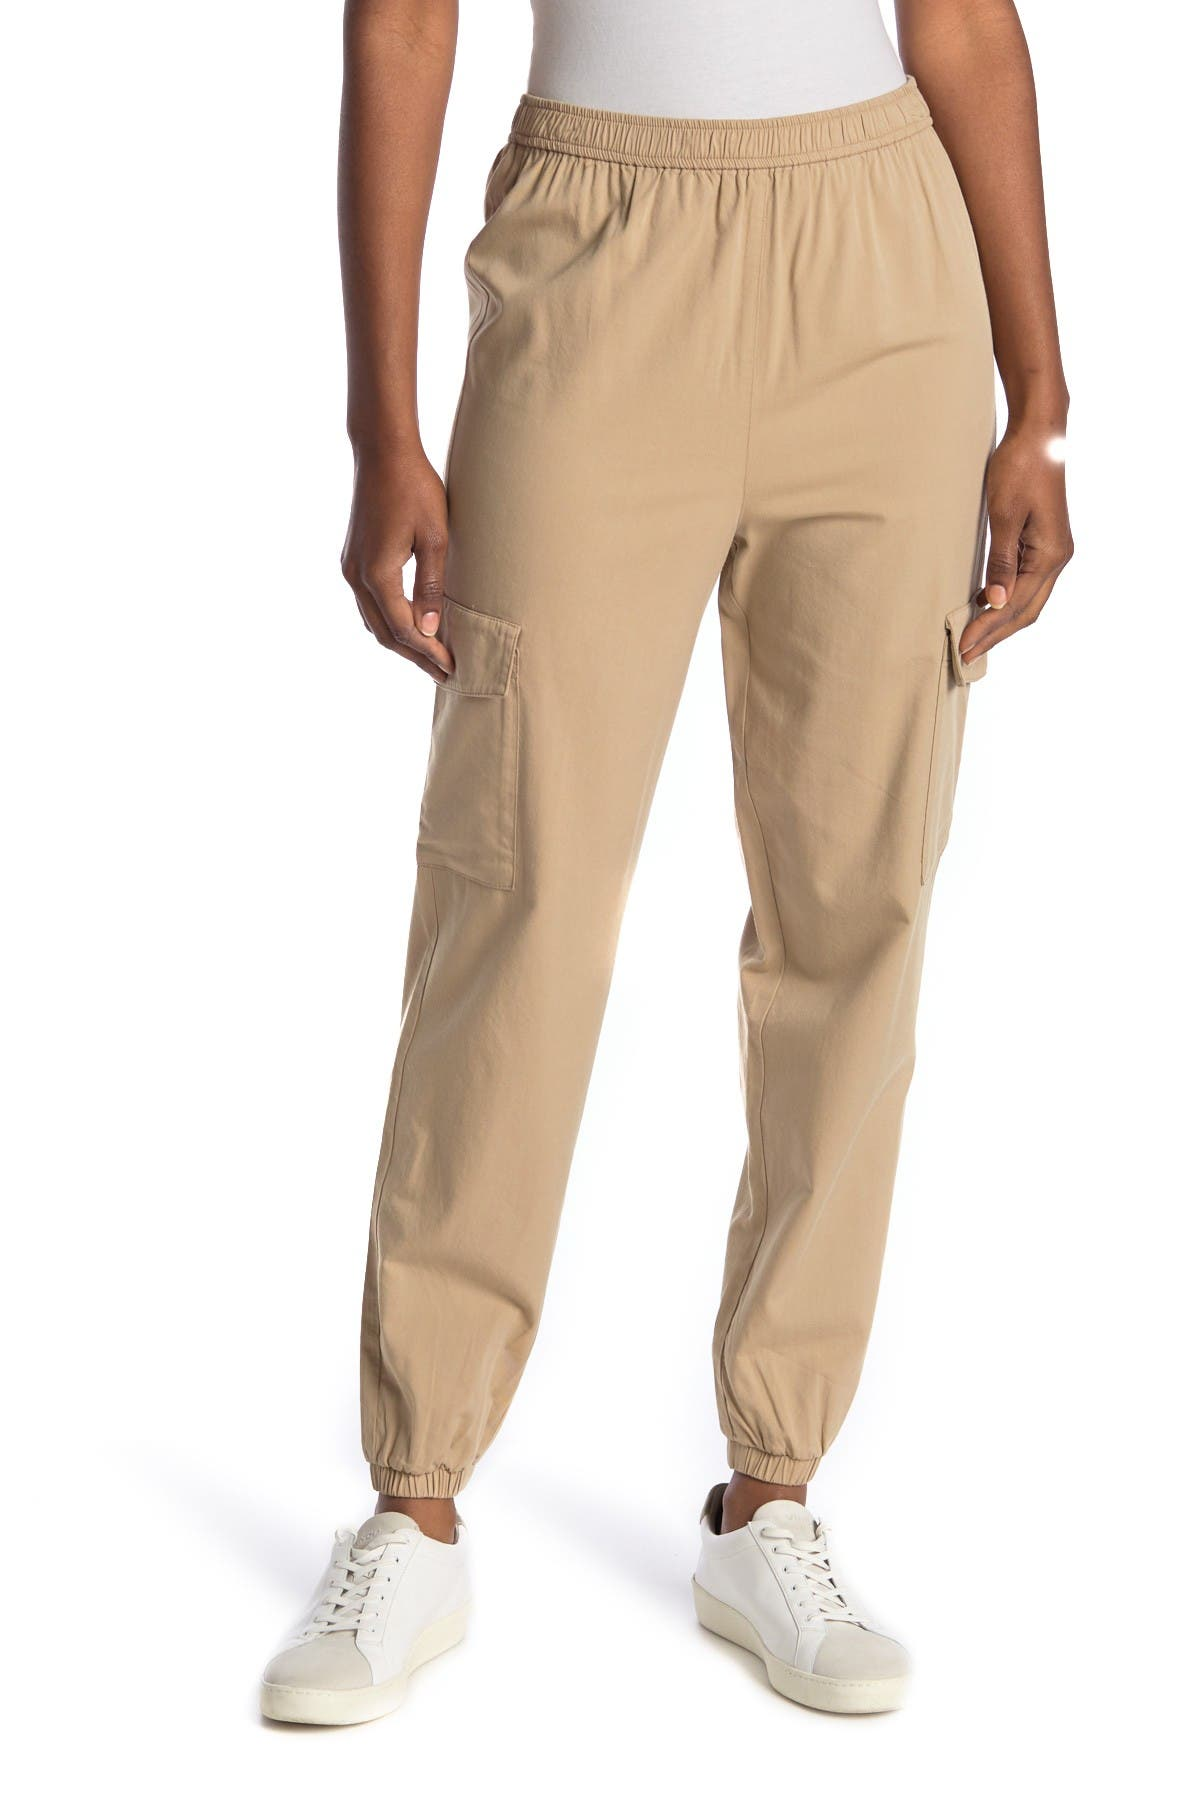 Image of Abound Cargo Joggers